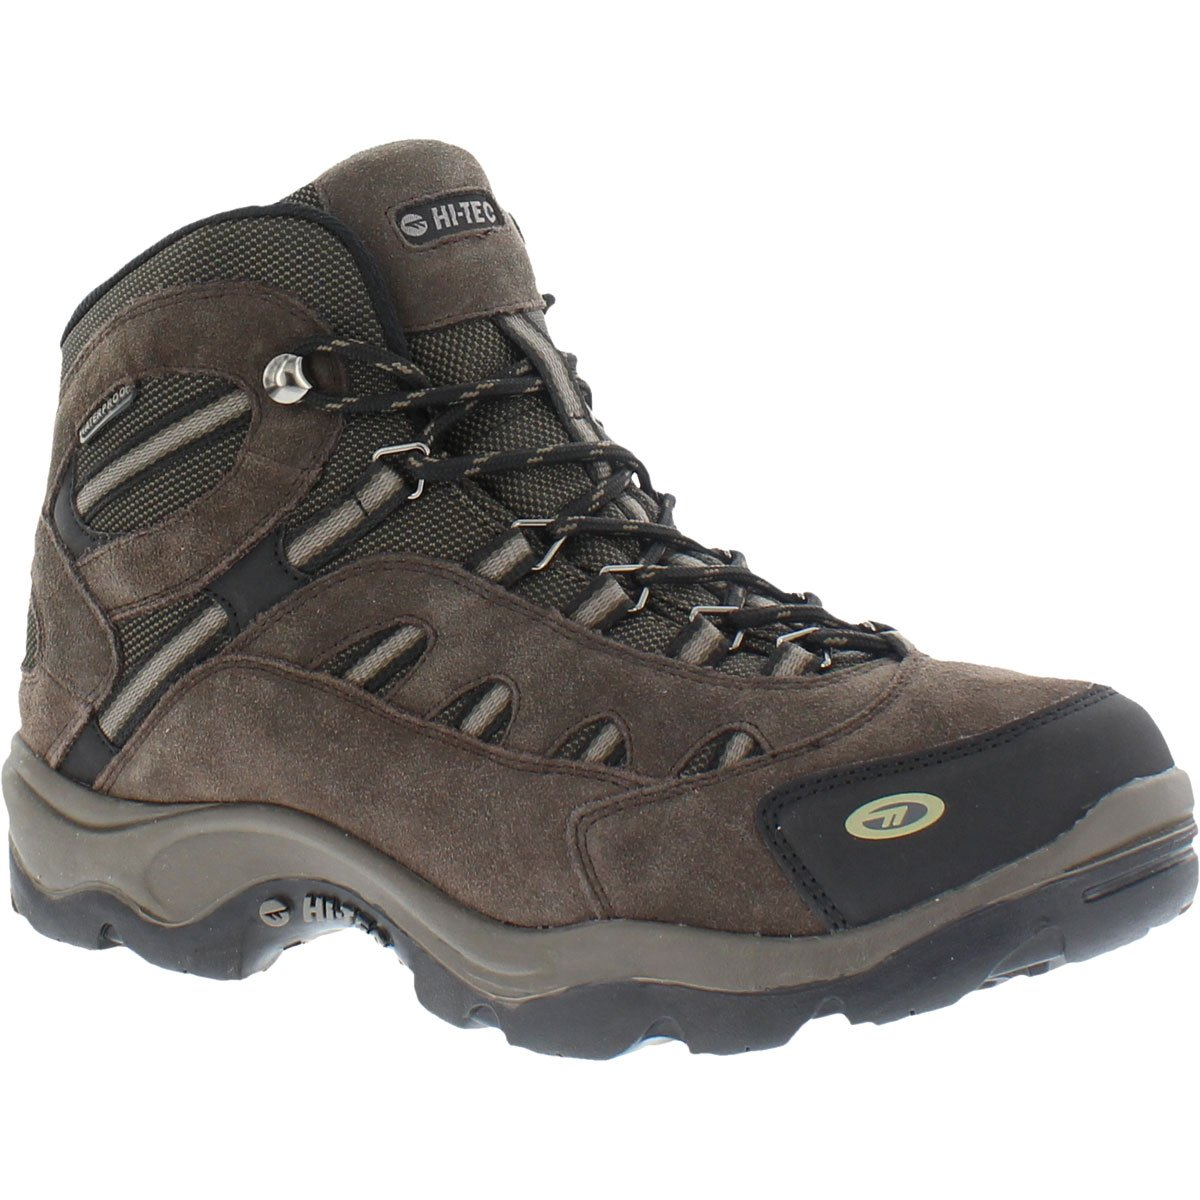 Hi-Tec Bandera Mid Waterproof Boots for Men - Chocolate/Bungee/Warm Grey